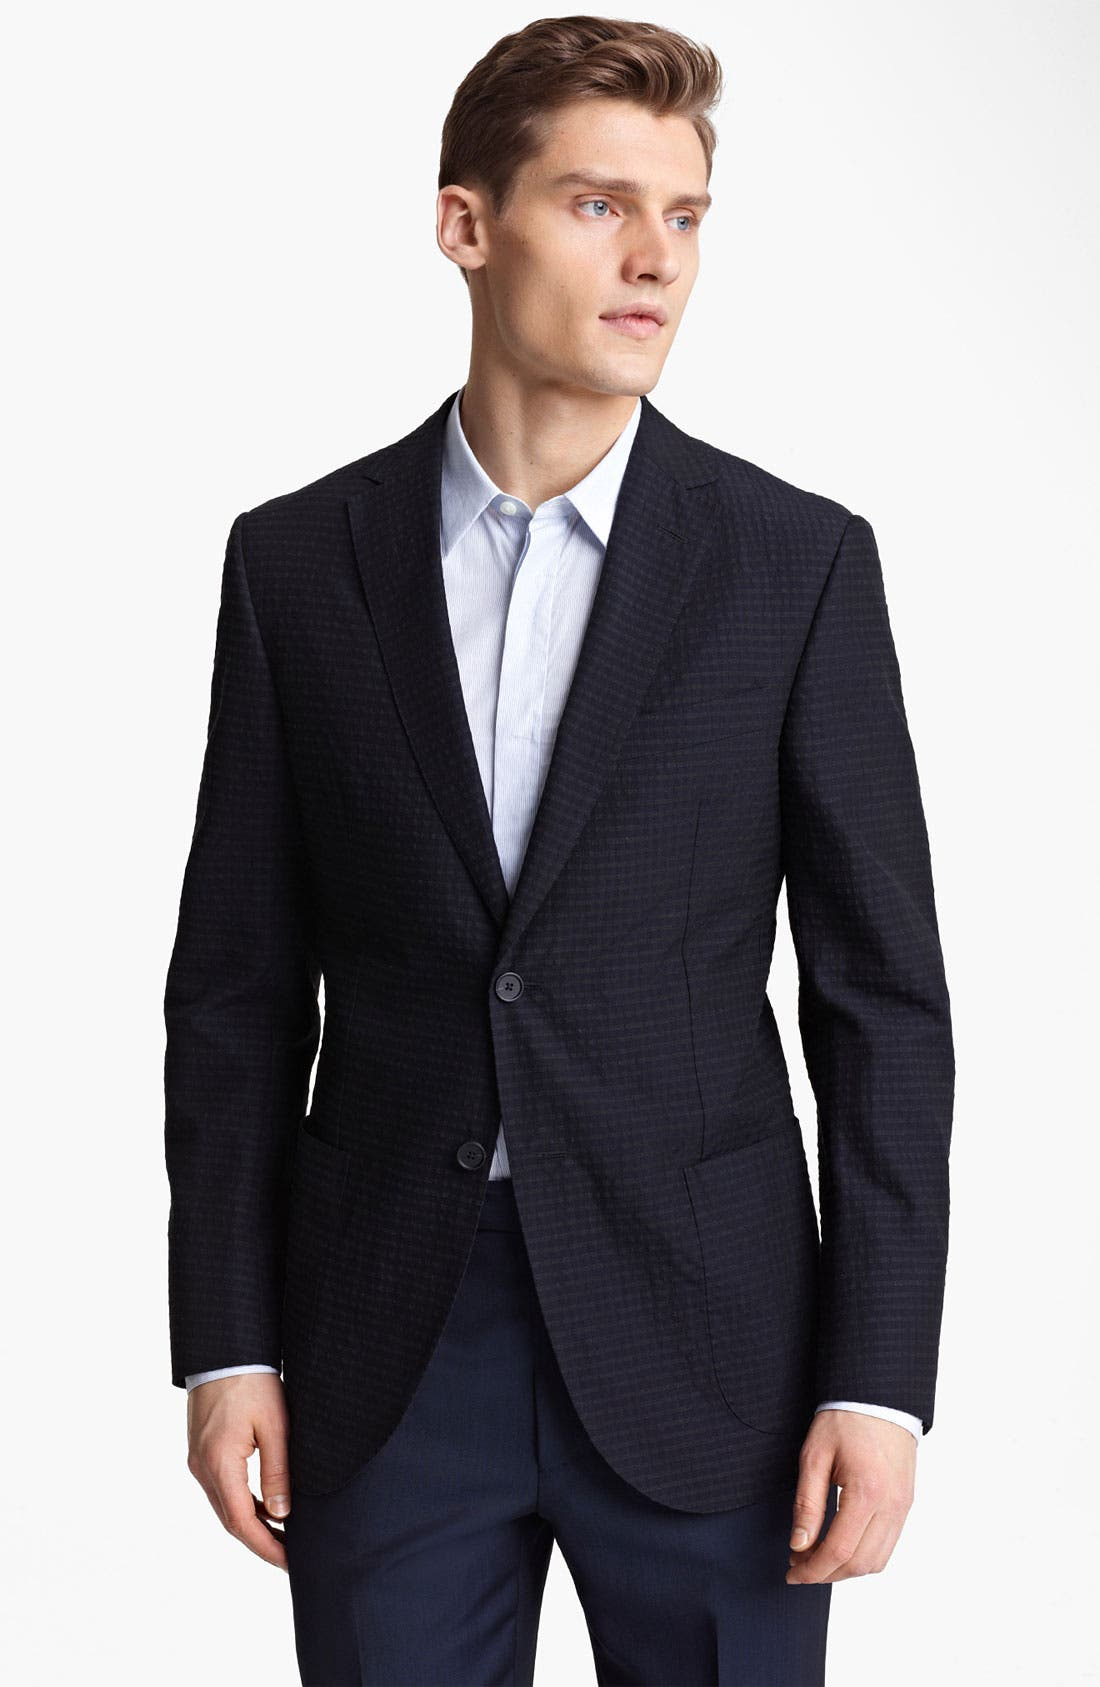 Alternate Image 1 Selected - Z Zegna Trim Fit Seersucker Sportcoat